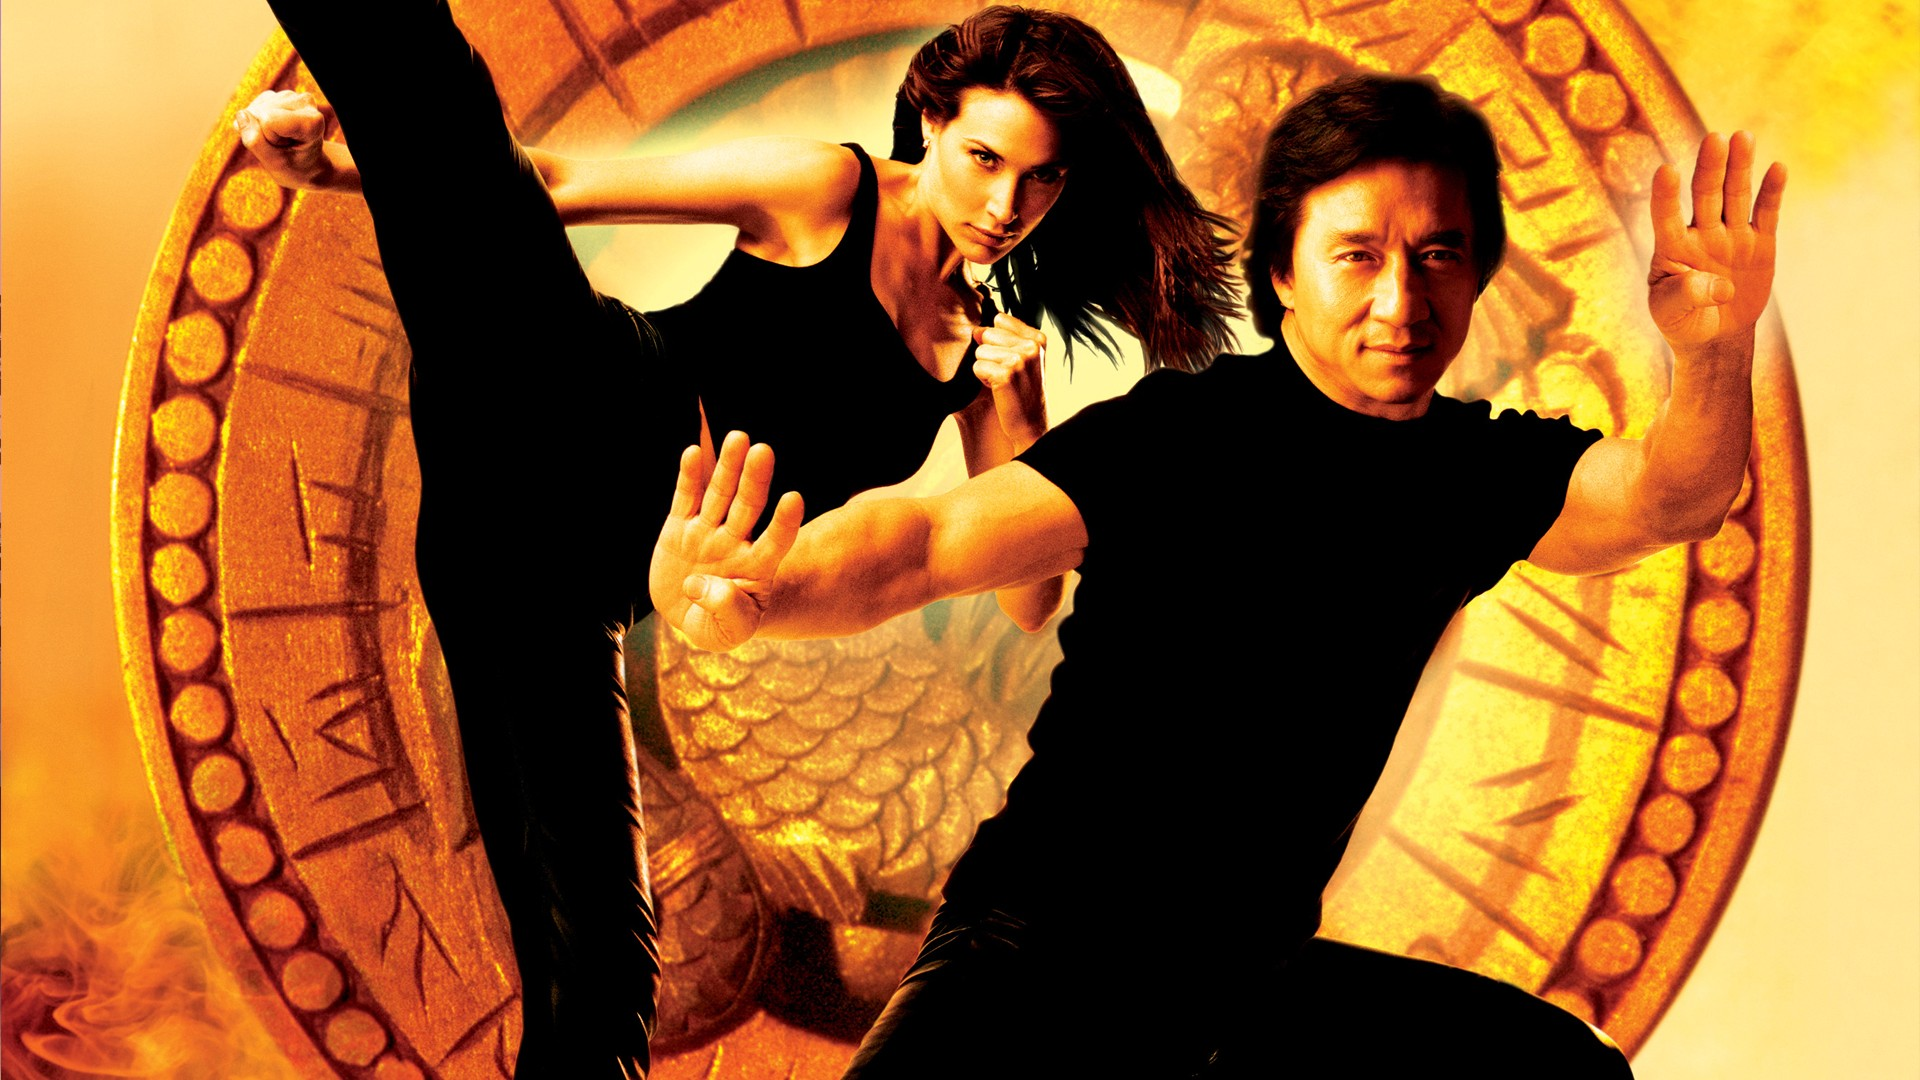 The medallion hd wallpaper background image 1920x1080 id 824167 wallpaper abyss - Jackie chan wallpaper download ...